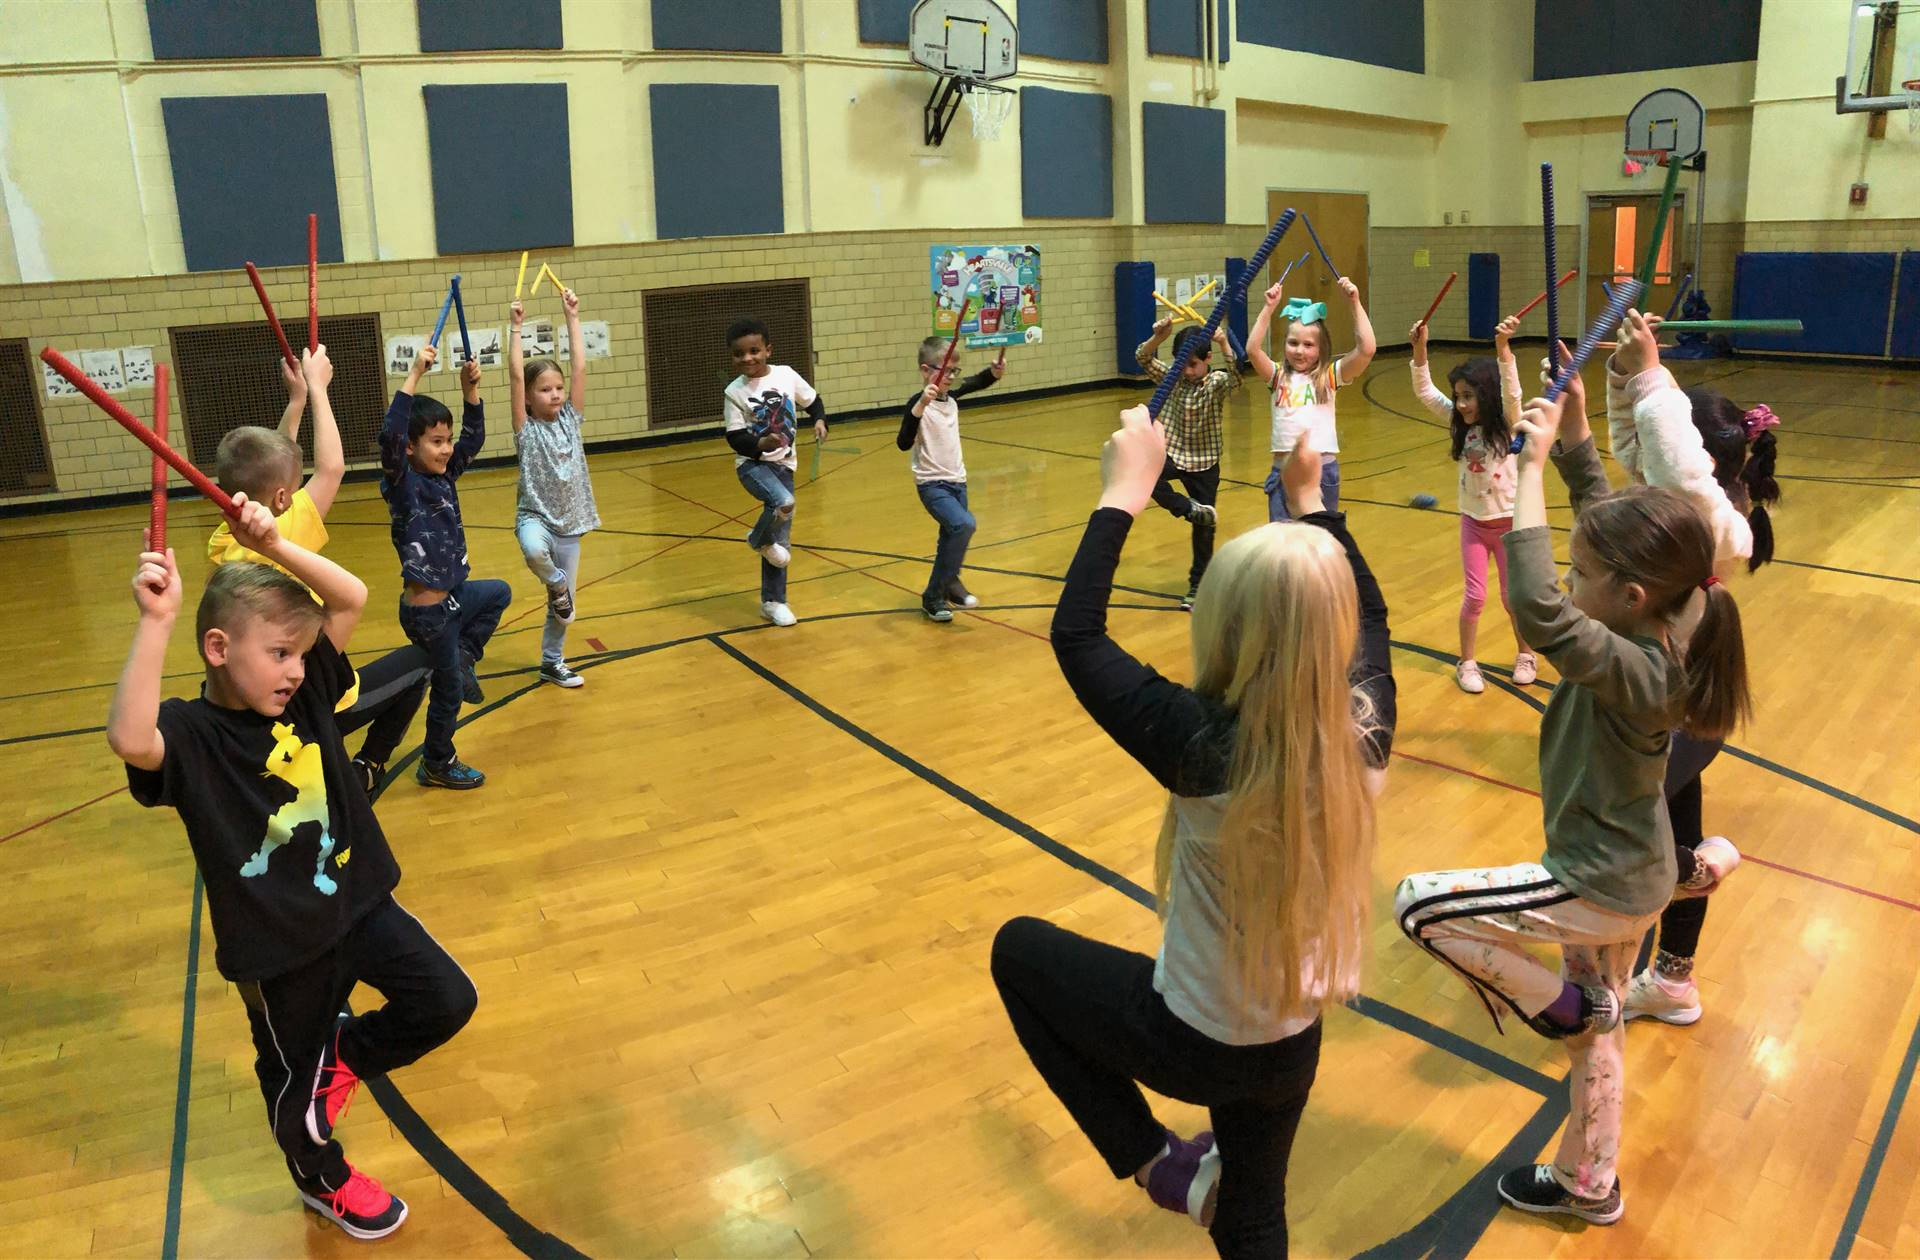 Students learning about music in gym class.